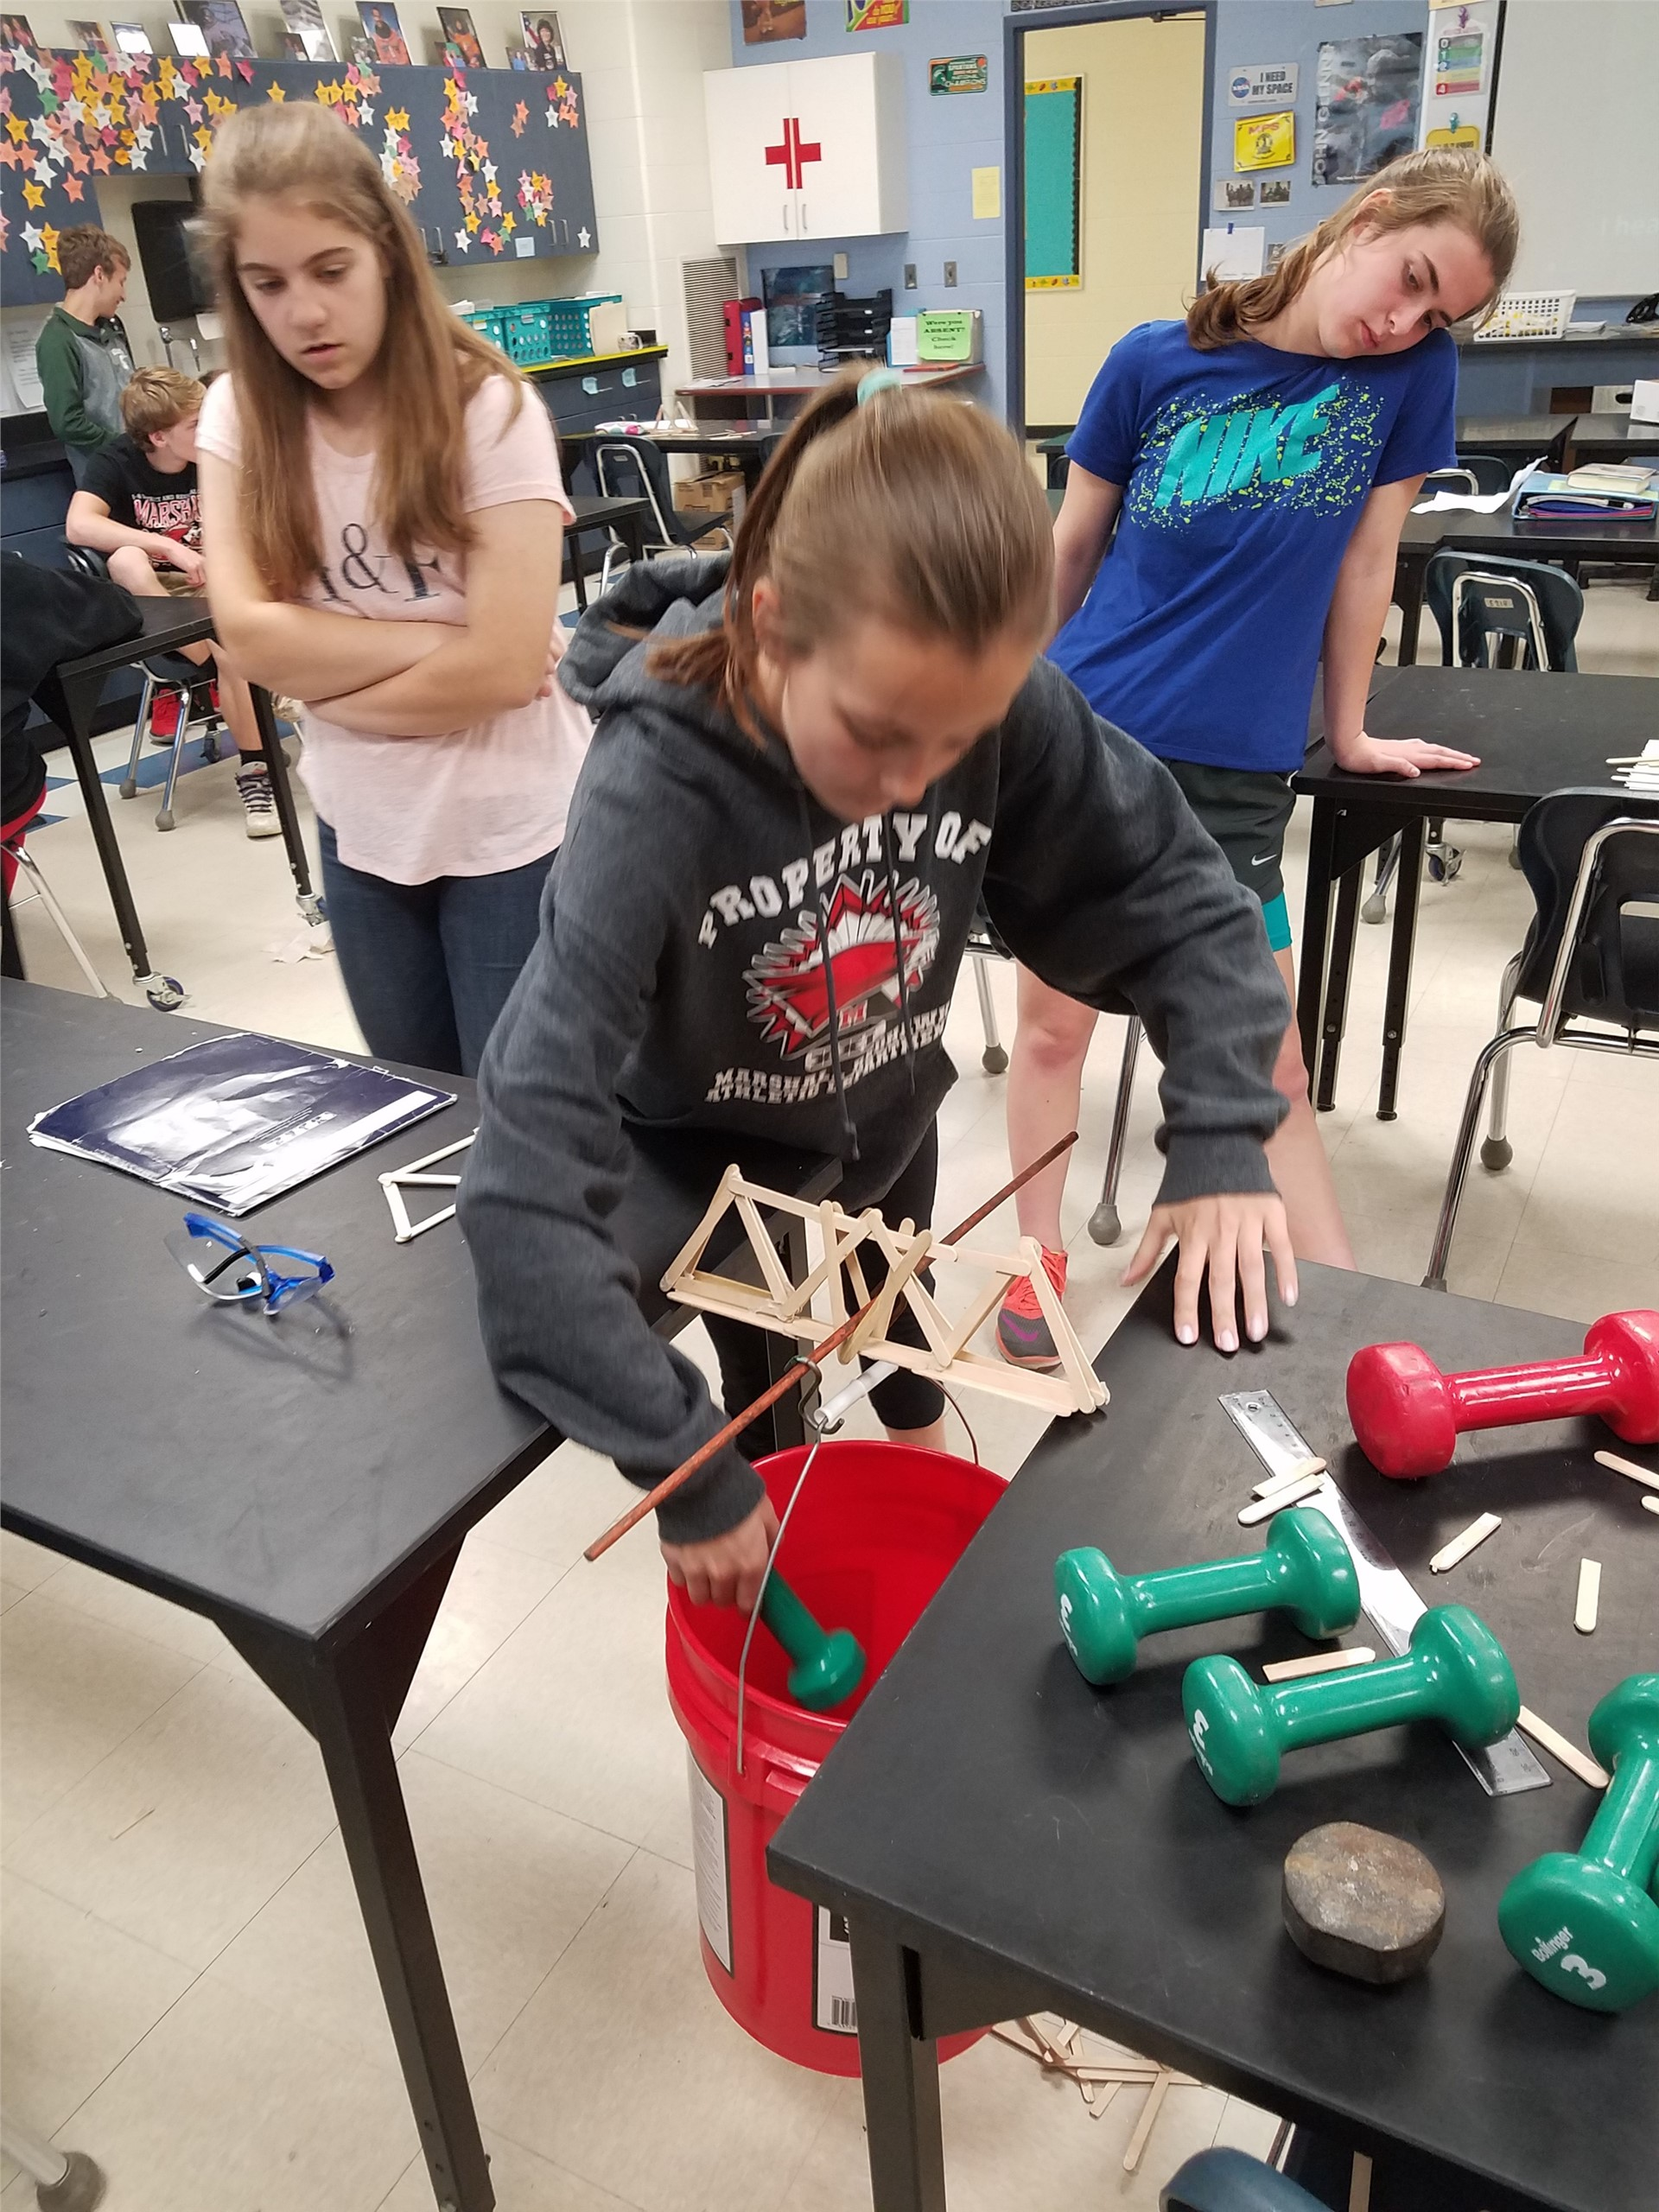 MS Students working on Science Project